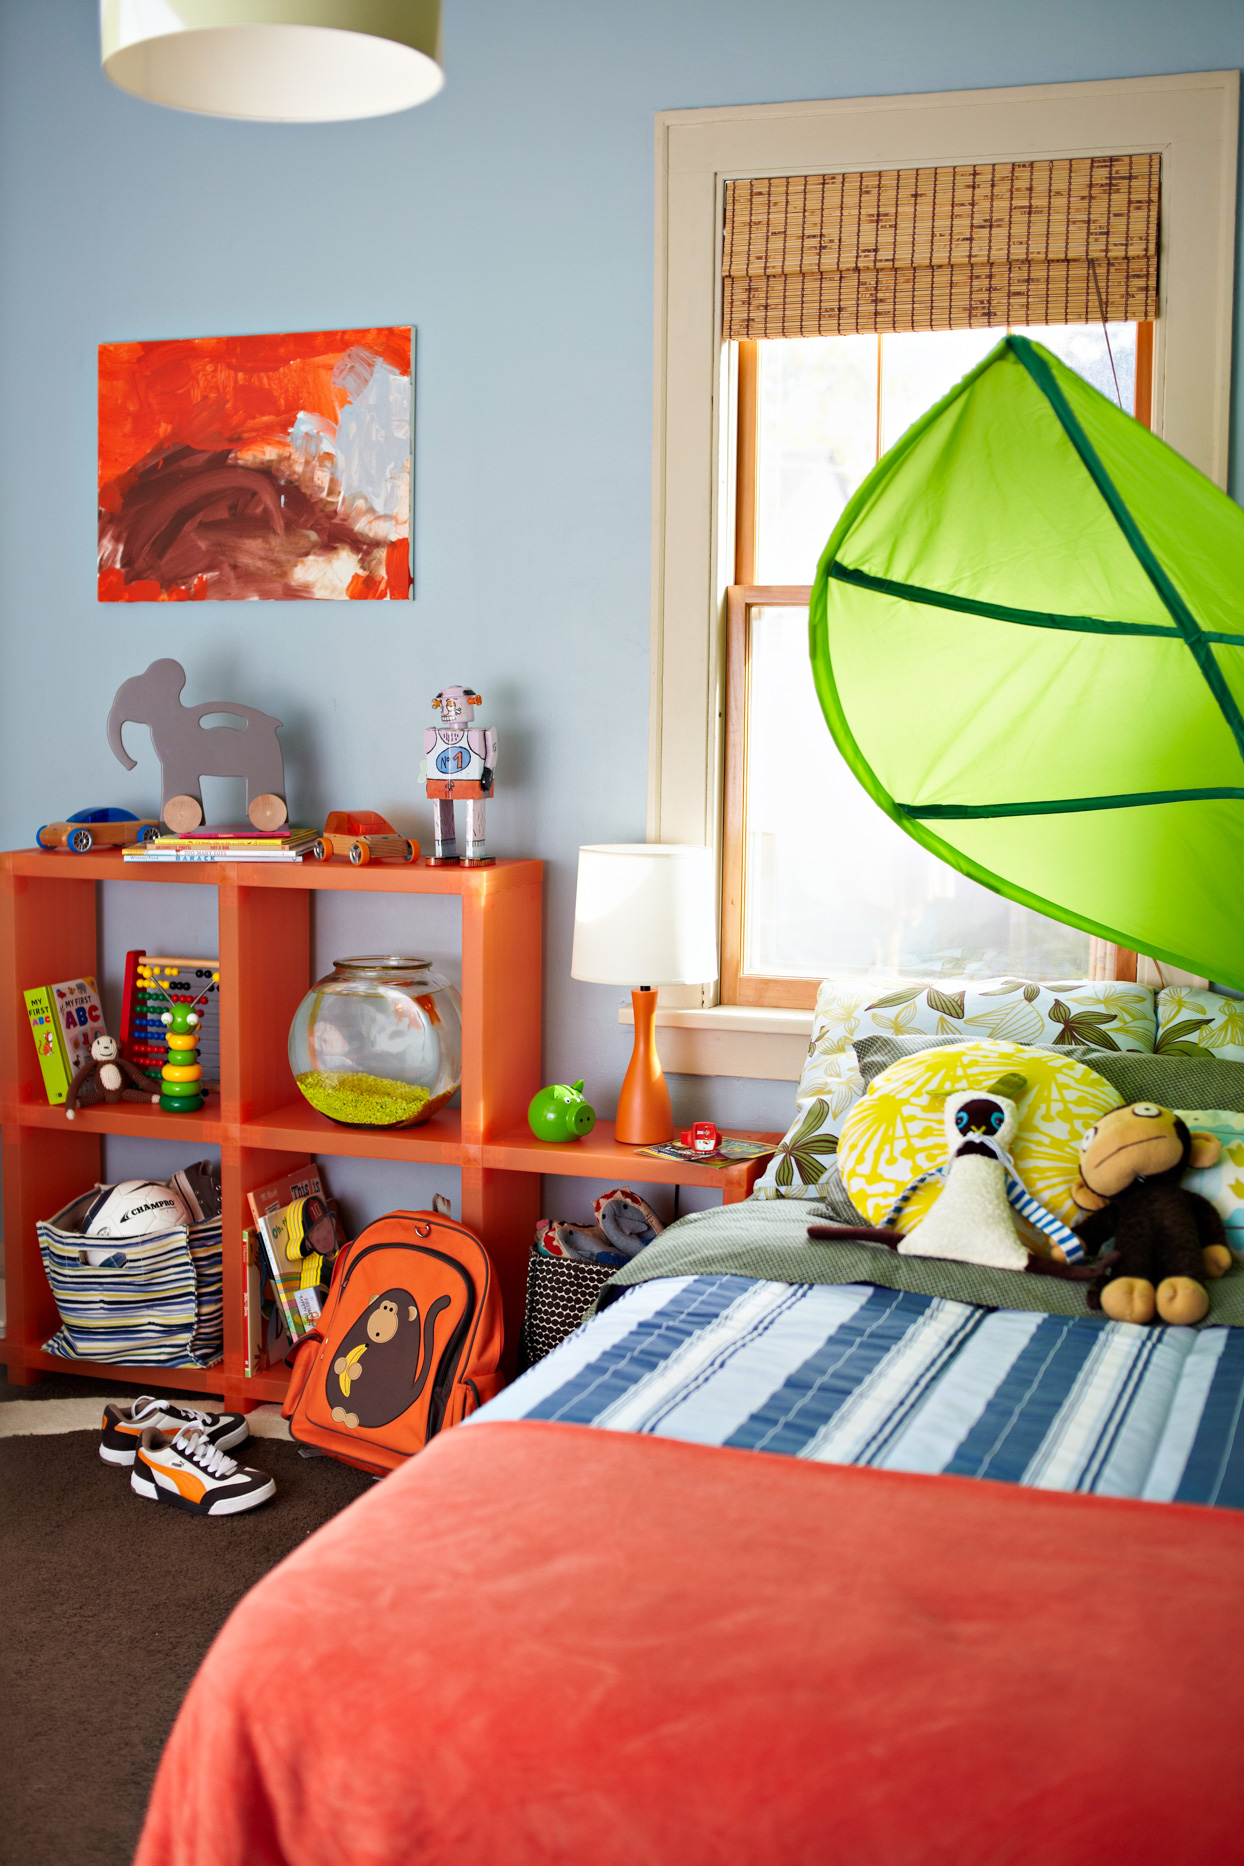 childrens bedroom with square shelving